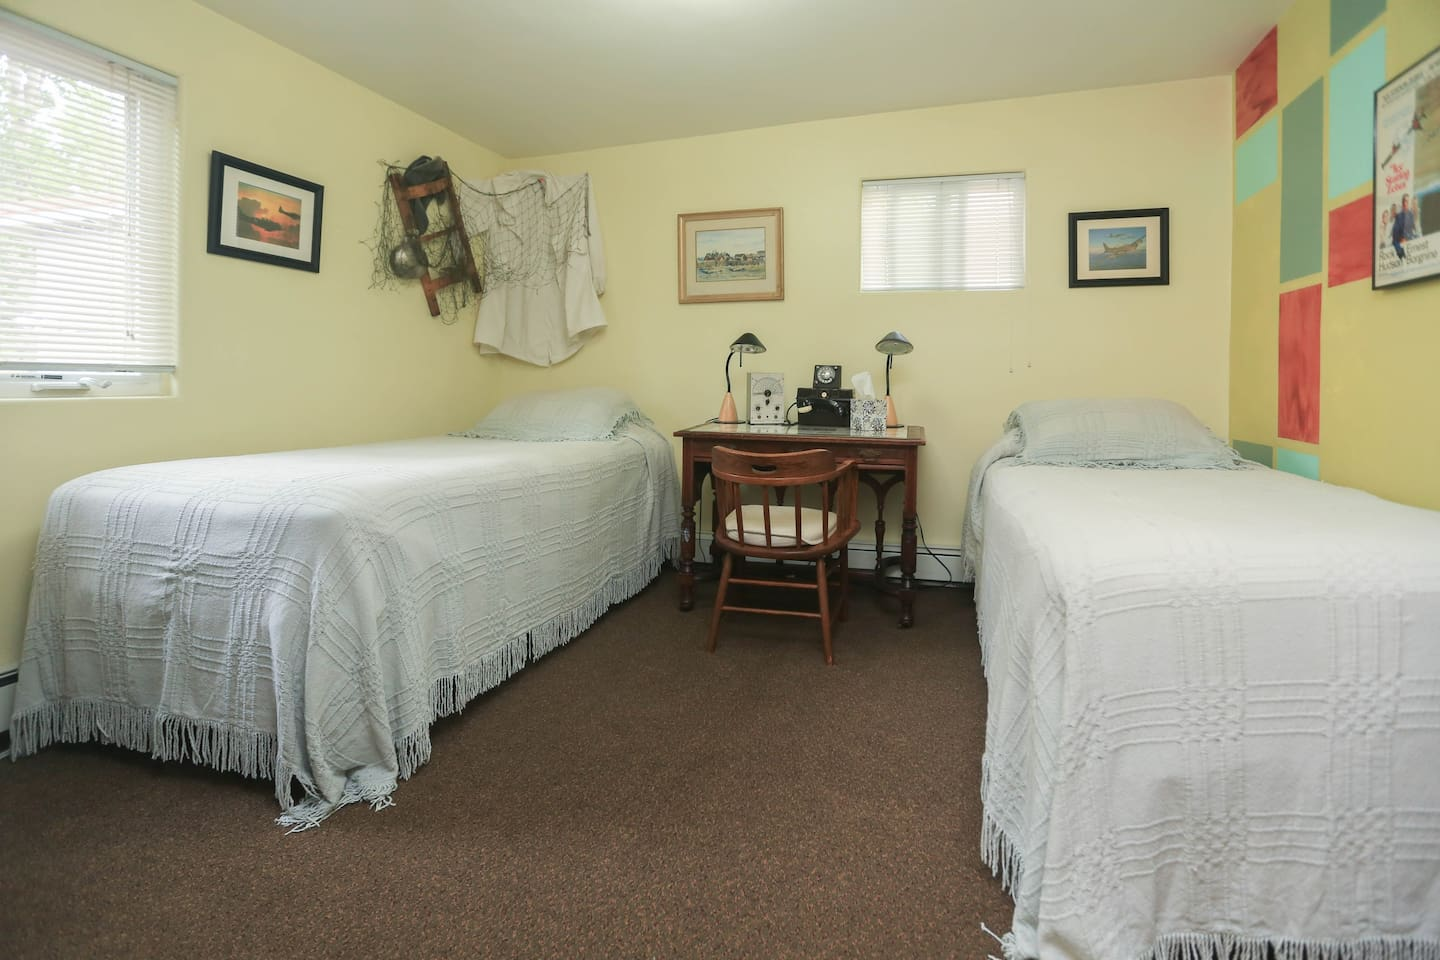 These twin beds are new, extra-longs and very comfortable.